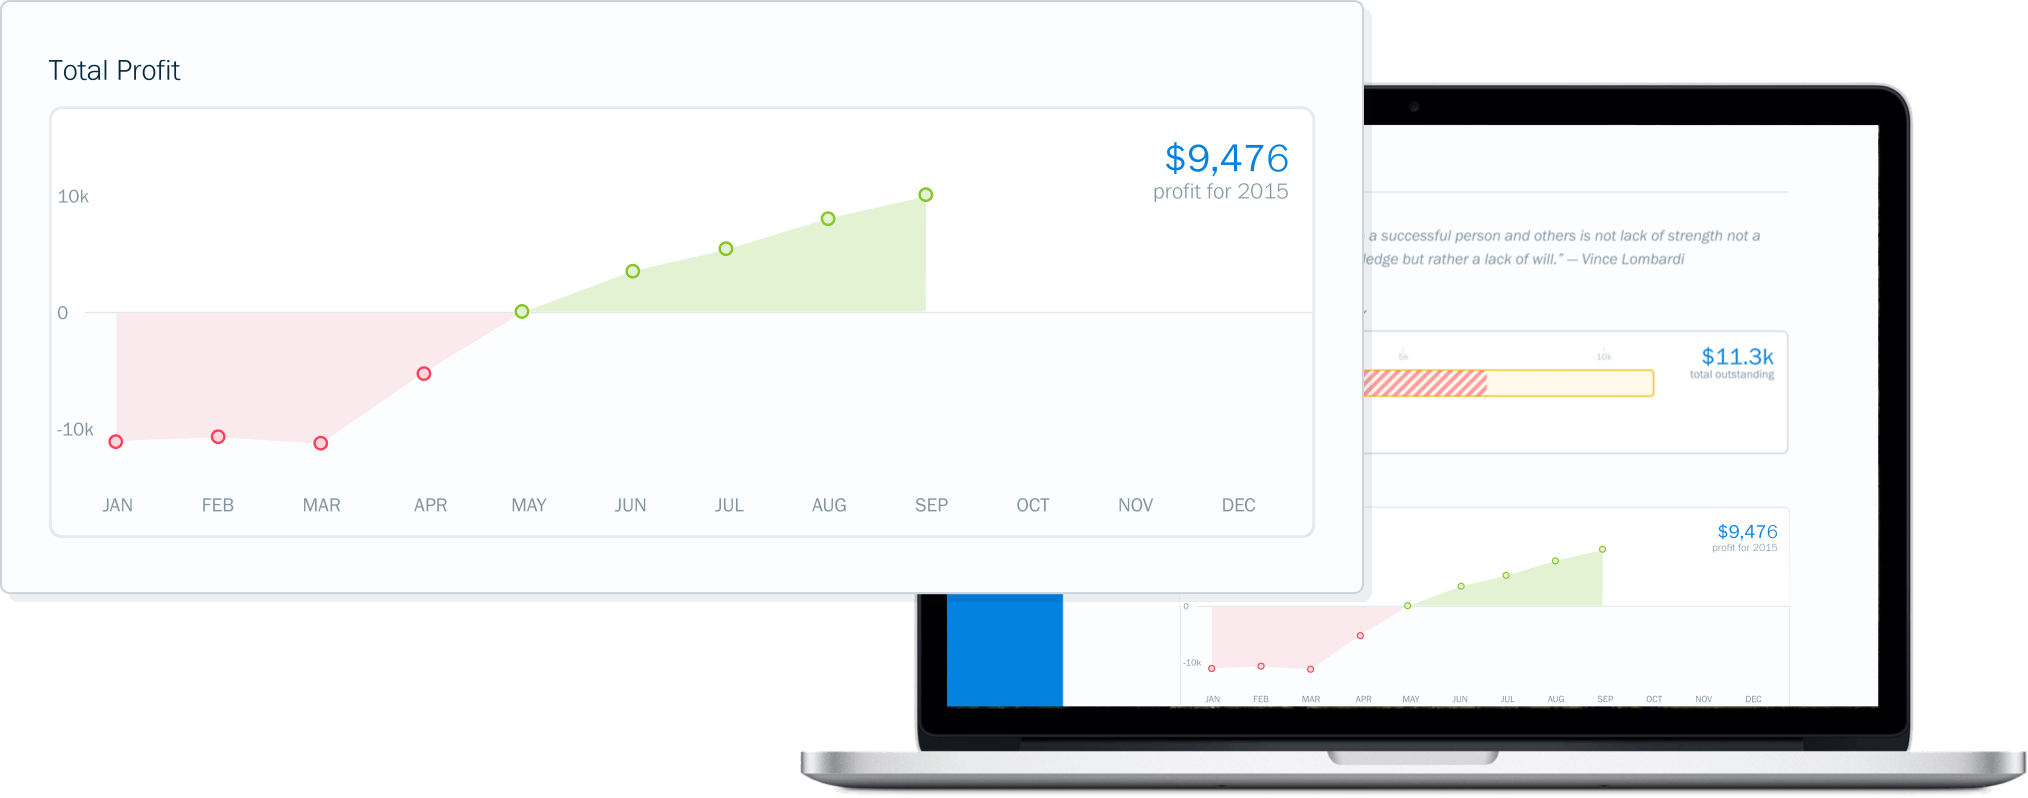 Customer using FreshBooks financial reporting software to view their dashboard showing profit and loss graph and expenditures